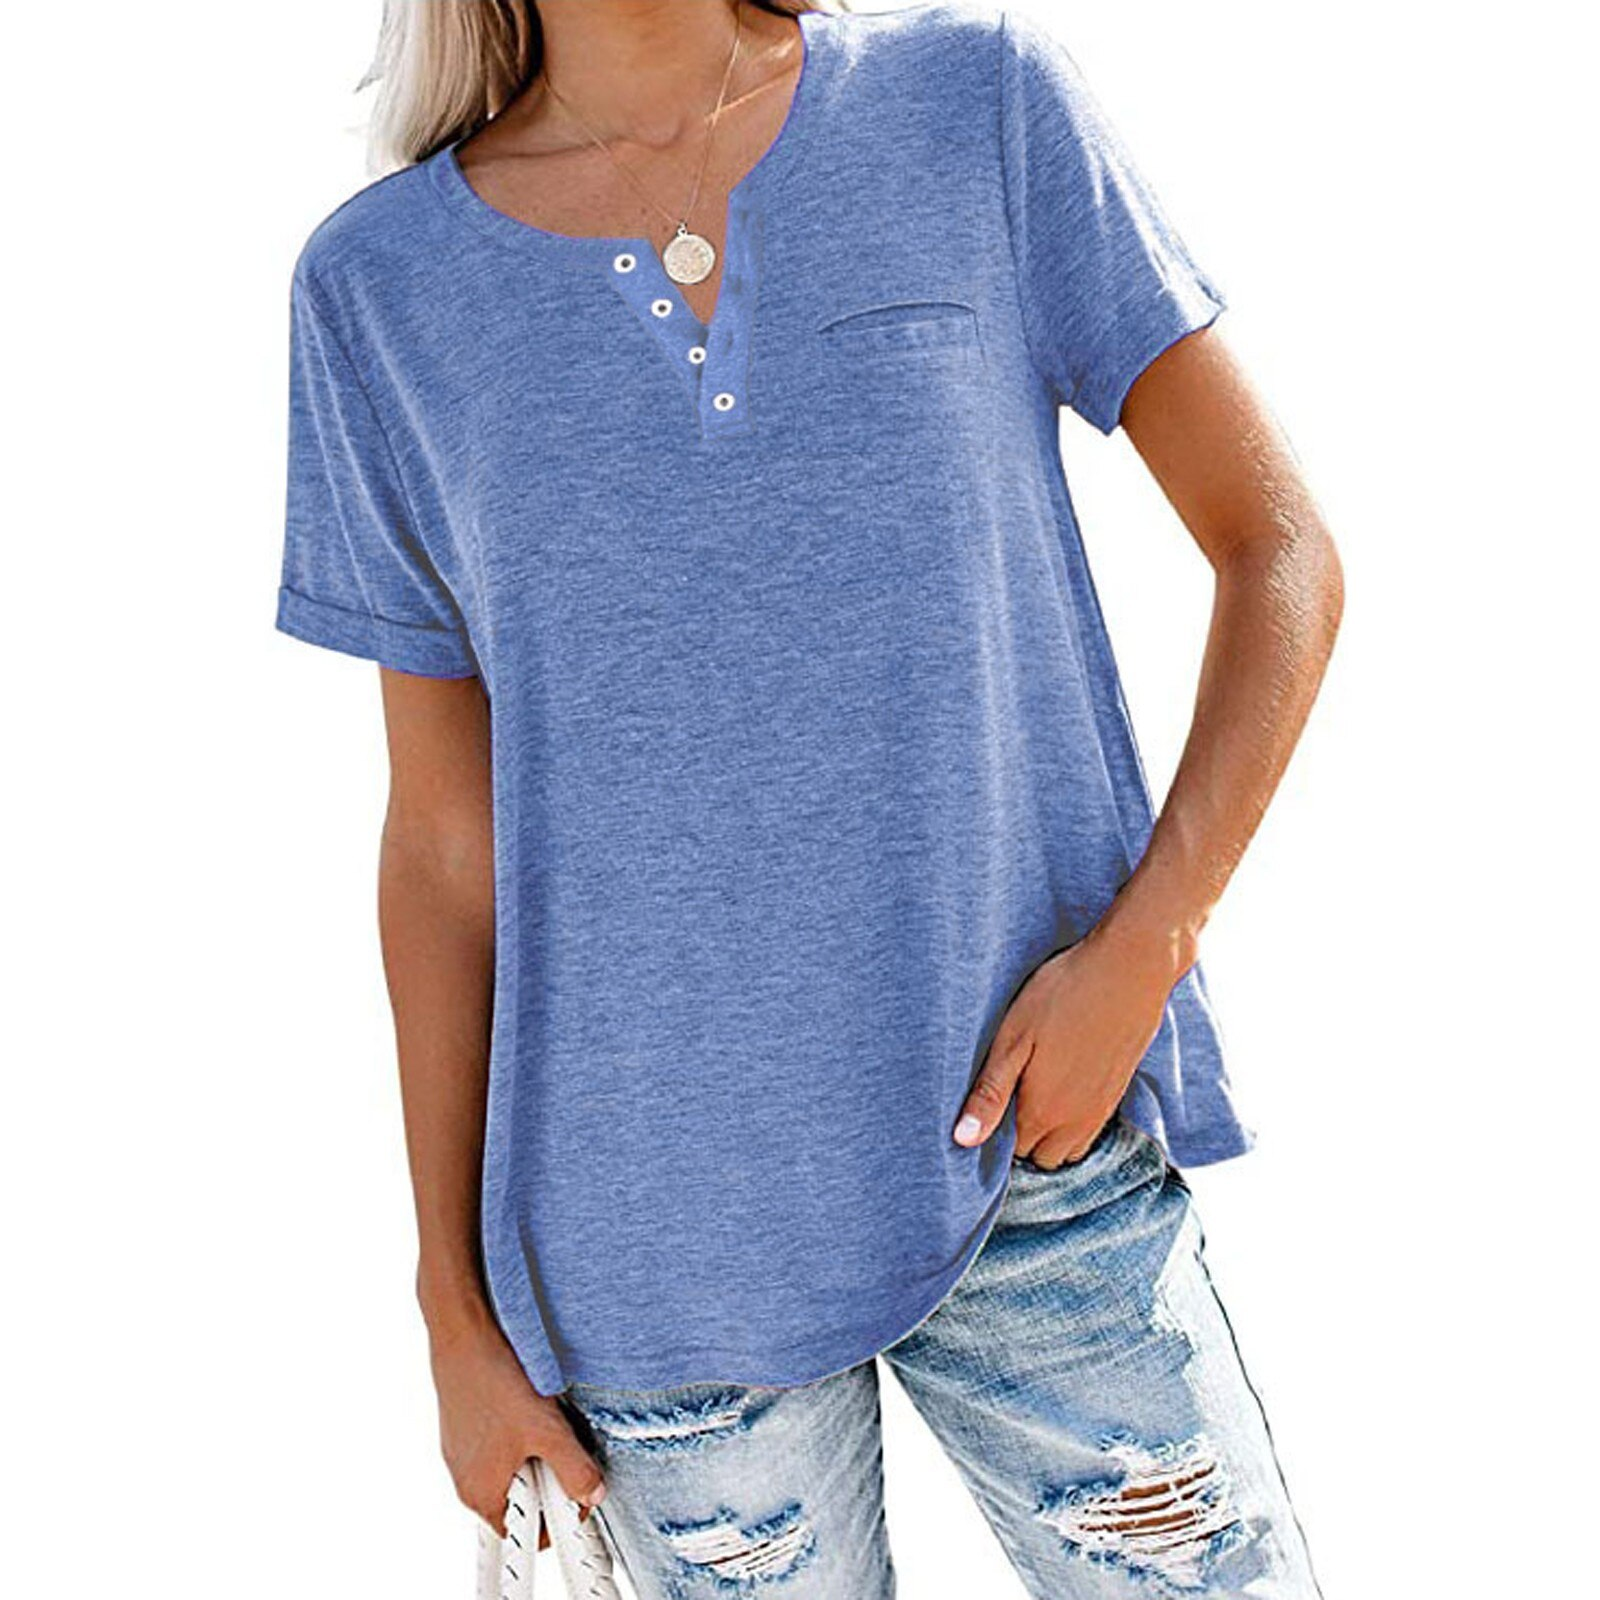 40# Women Loose Solid Basic T Shirt short Sleeve Round Neck T-shirt Hipster femme Funny Tshirts Women Женские Футболки 2021